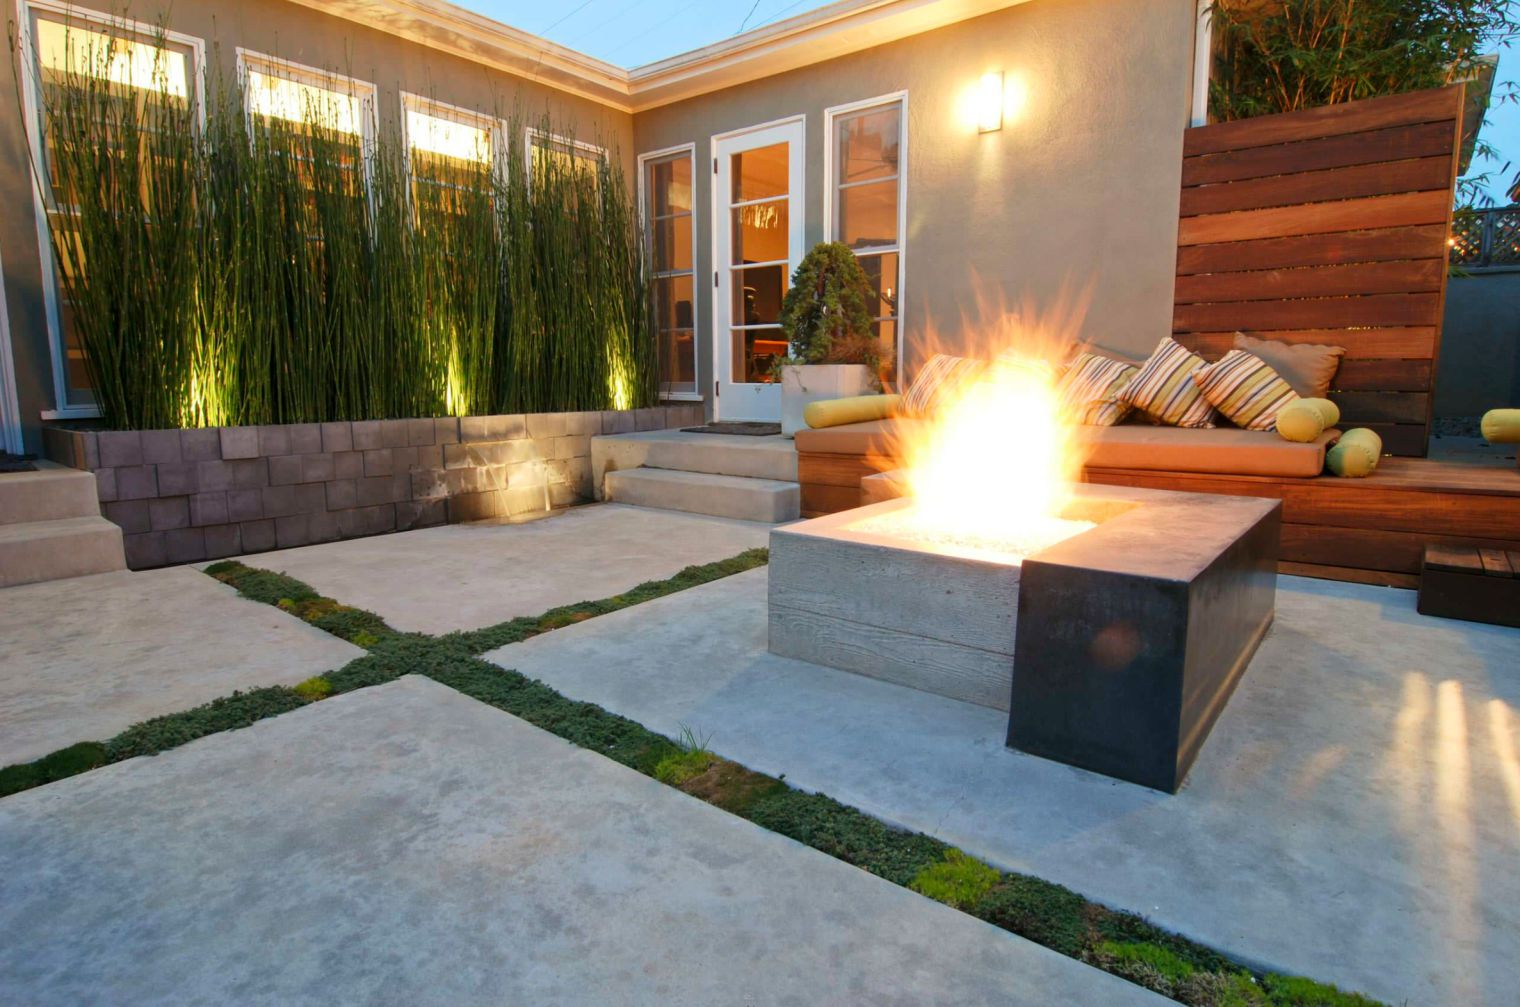 15 Beautiful Concrete Patio Ideas And Designs regarding 15 Awesome Designs of How to Makeover Backyard Concrete Ideas